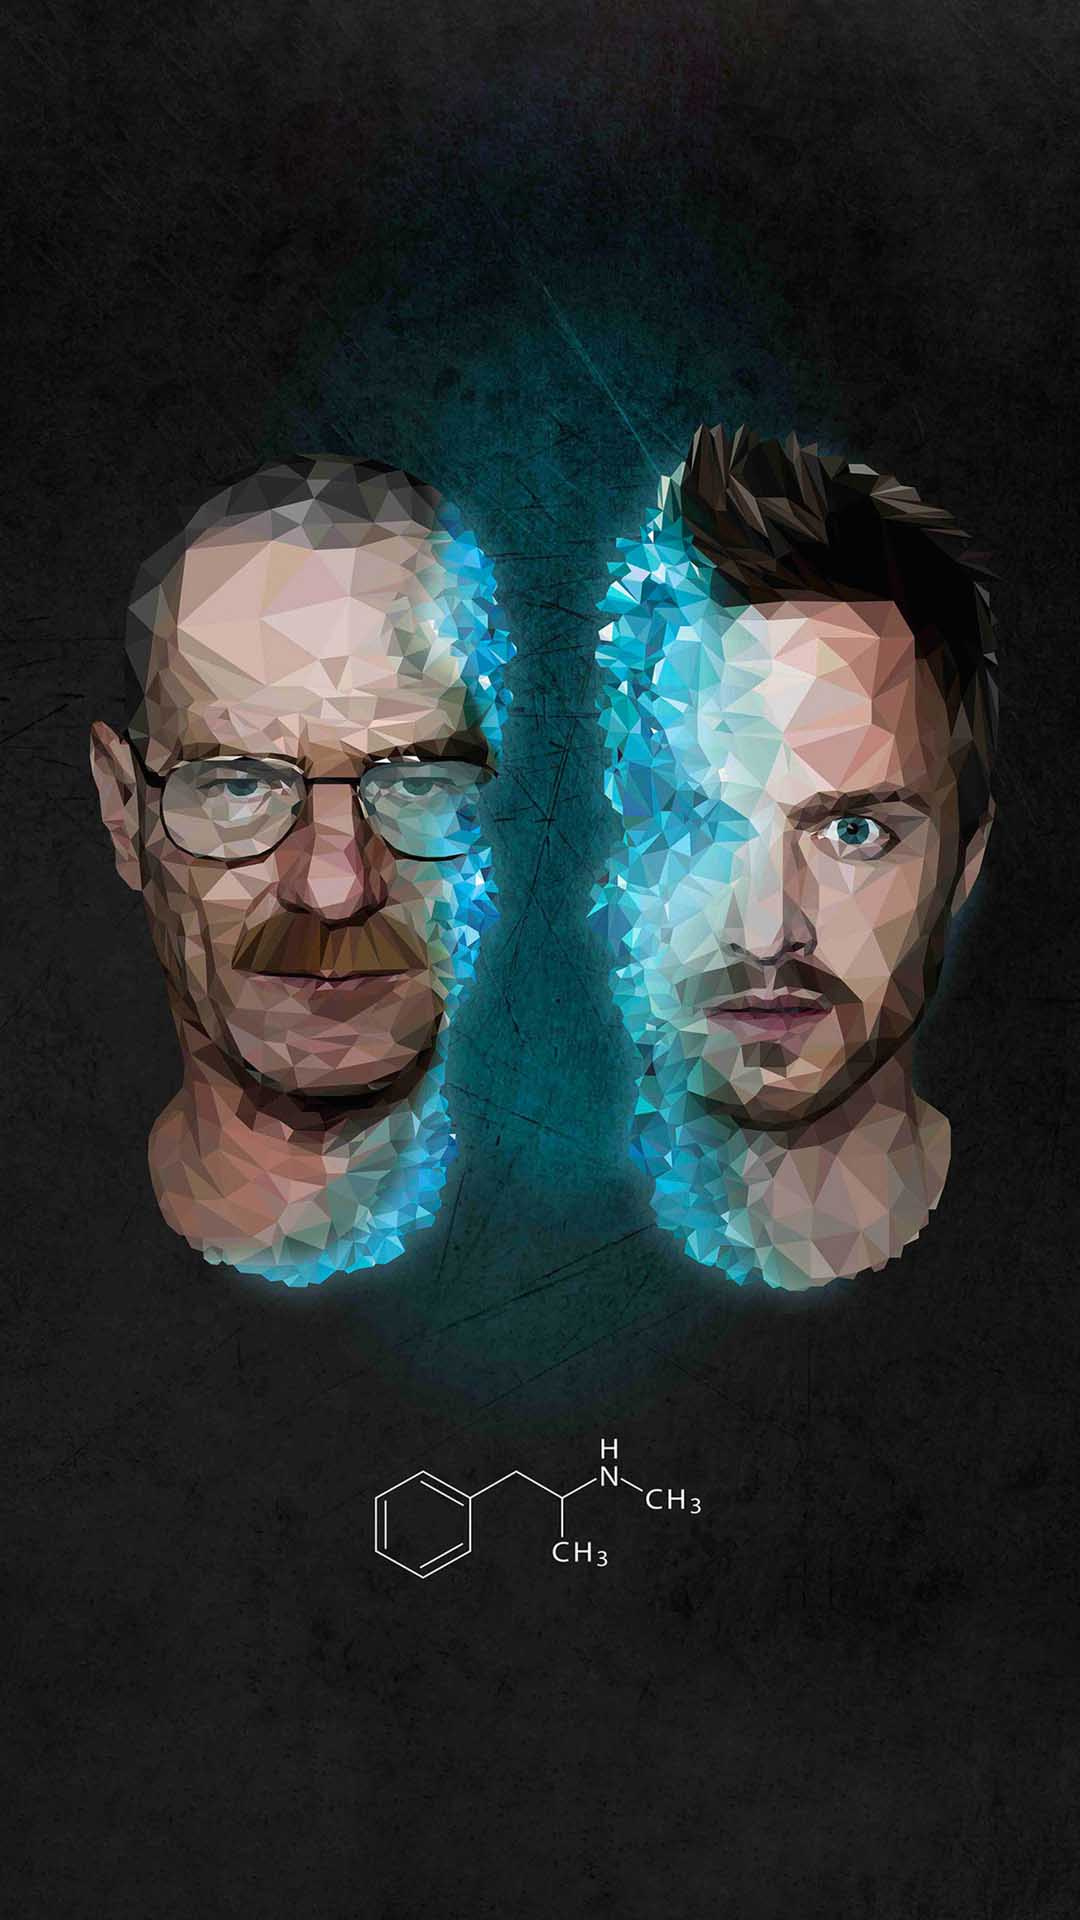 iPhone wallpaper breaking bad 2 3Wallpapers : notre sélection de fonds d'écran du 11/04/2018